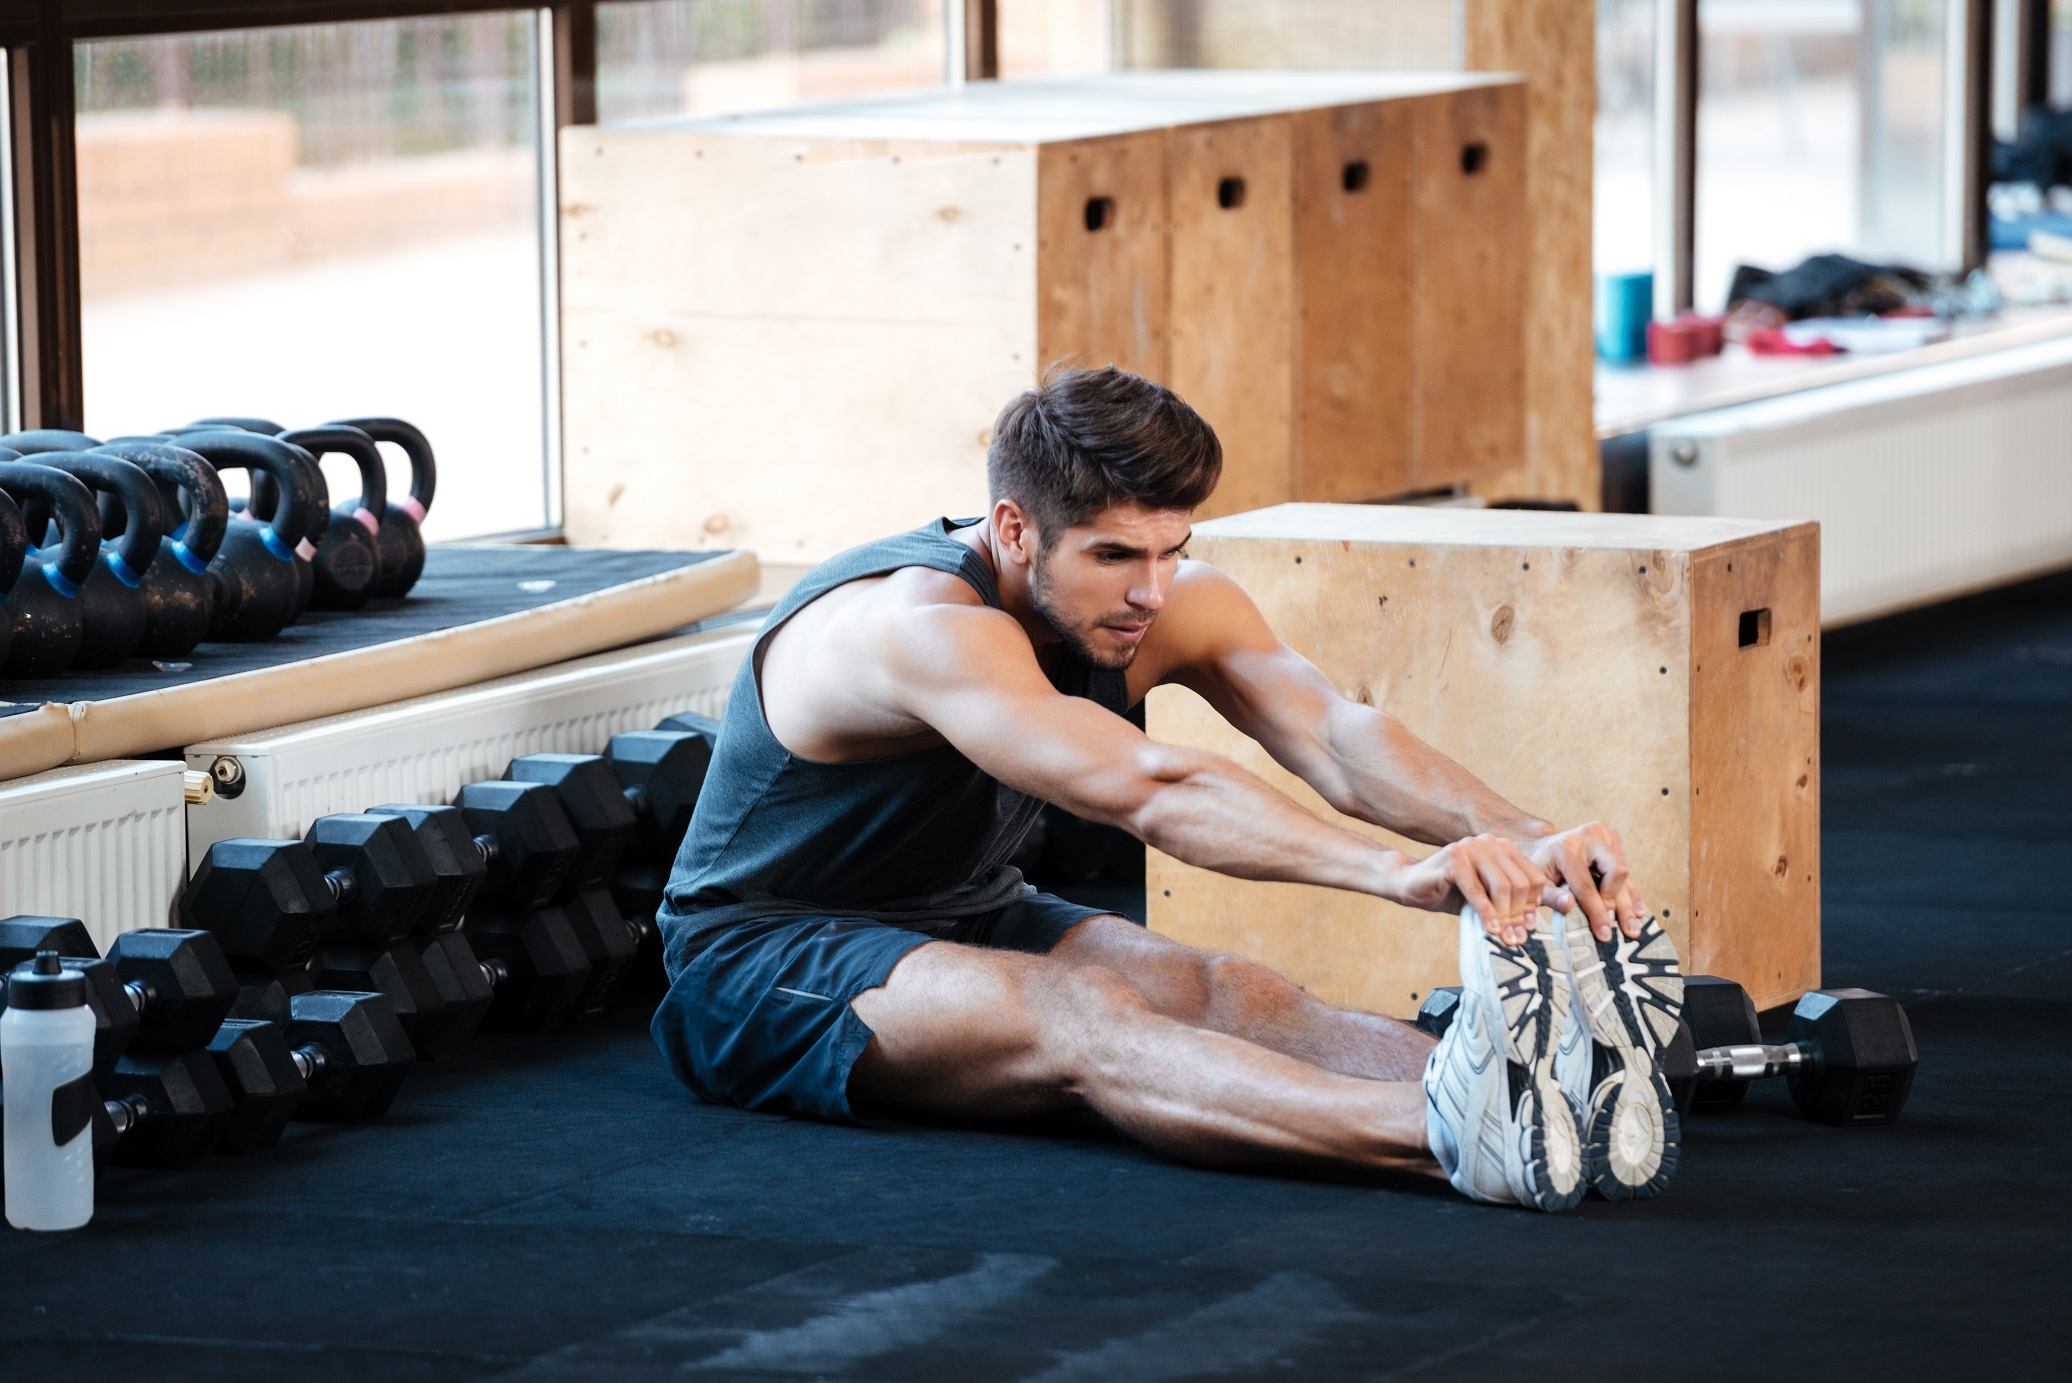 Stretching and strength training